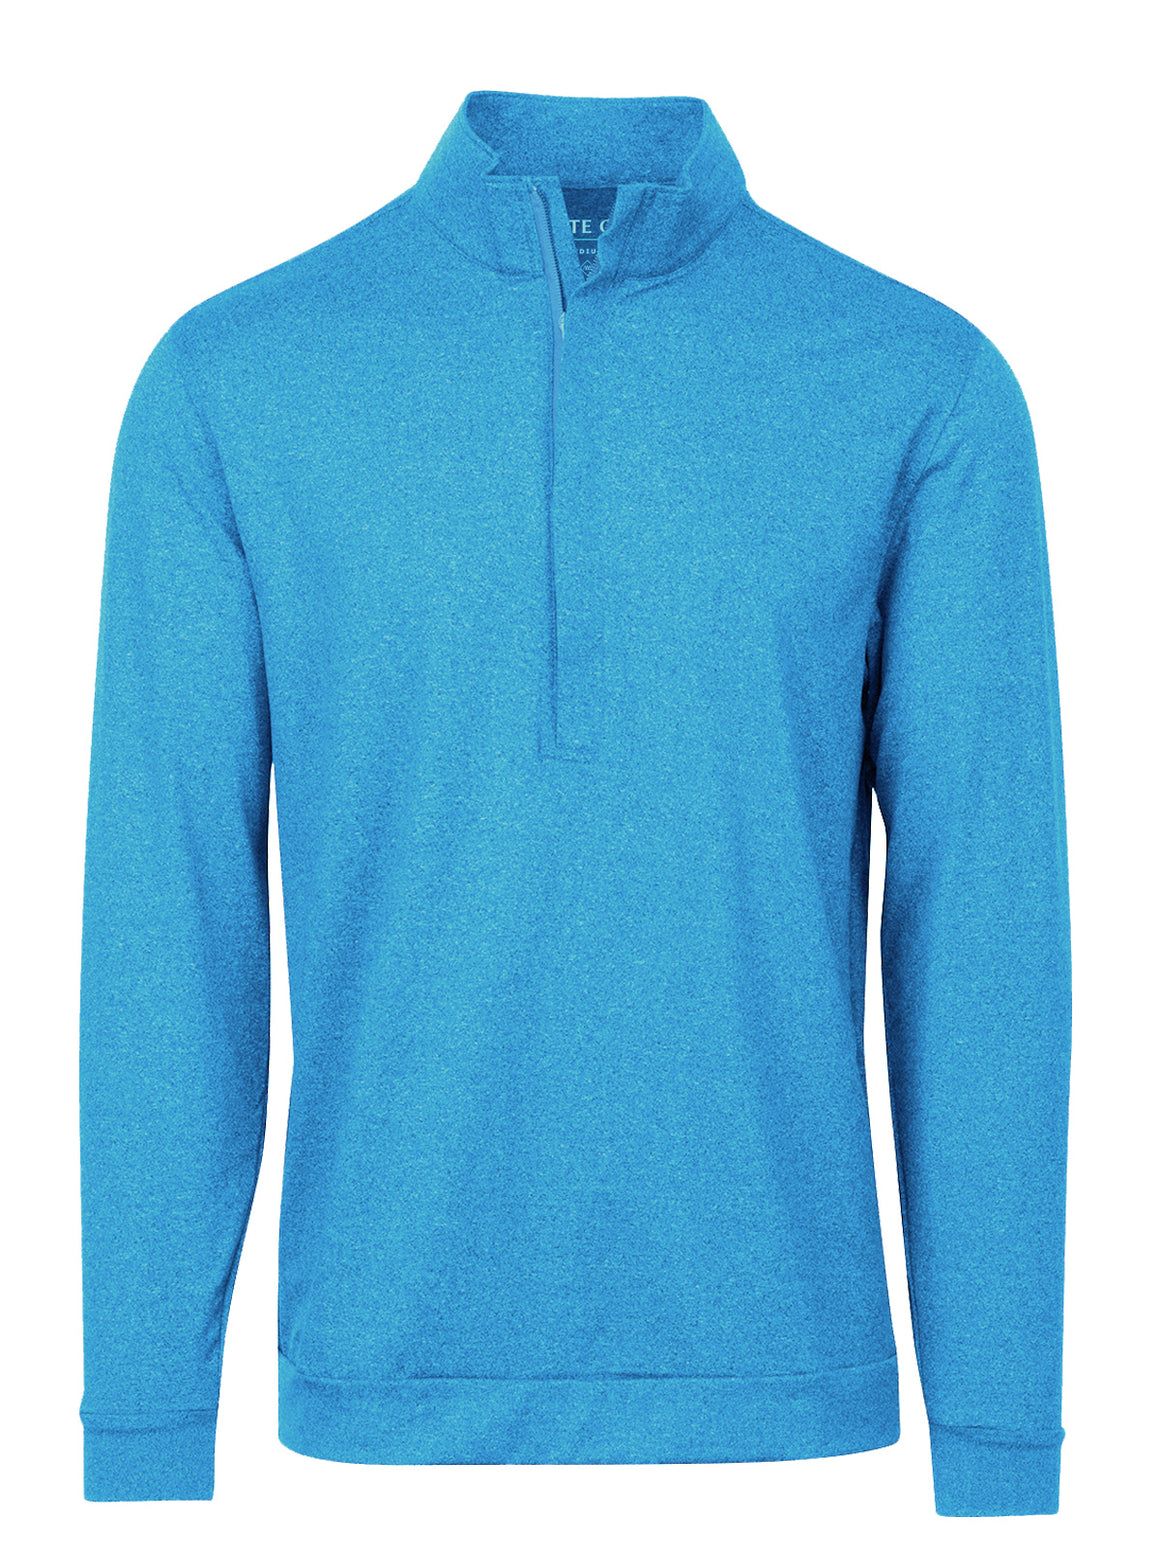 Hightower Half Zip - Coastal Blue Heather